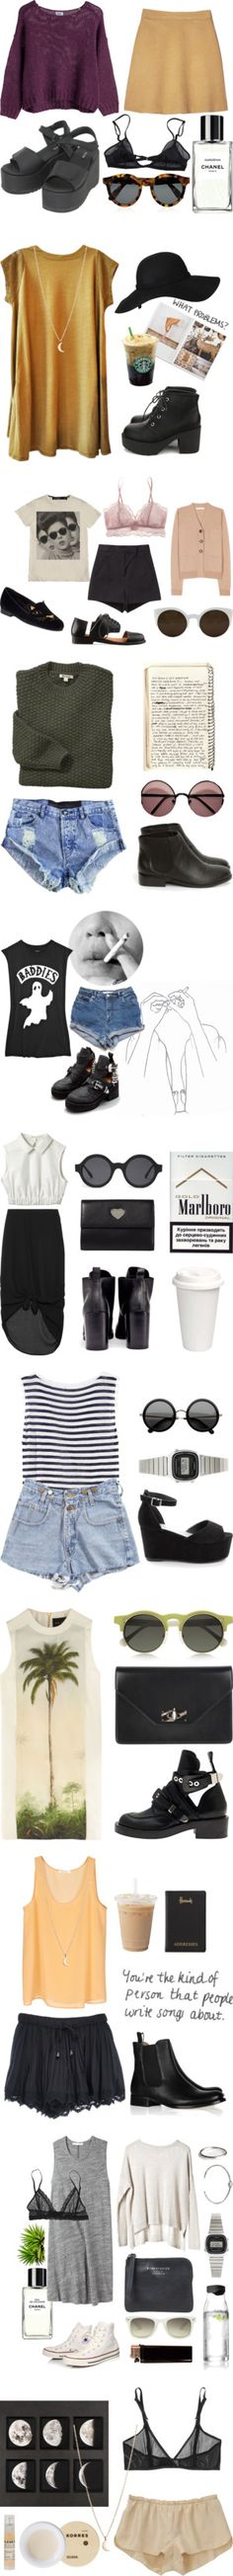 """grunge"" by pearl-roses ❤ liked on Polyvore"